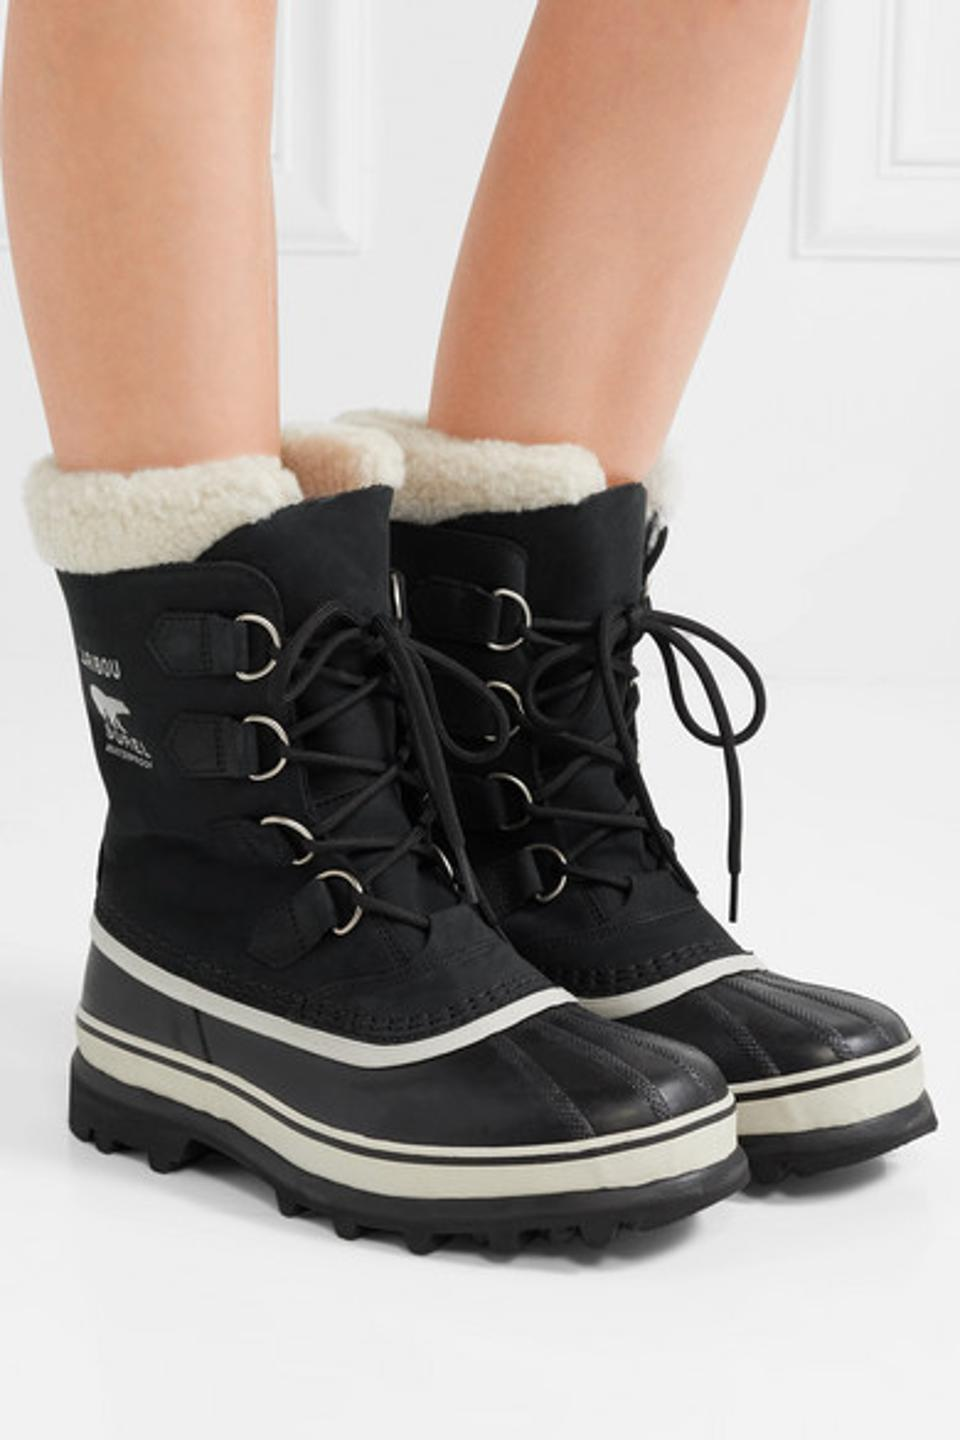 Women Winter High-top Boots Suede Ankle Waterproof Snow Boots Lace-Up Shoes WQ